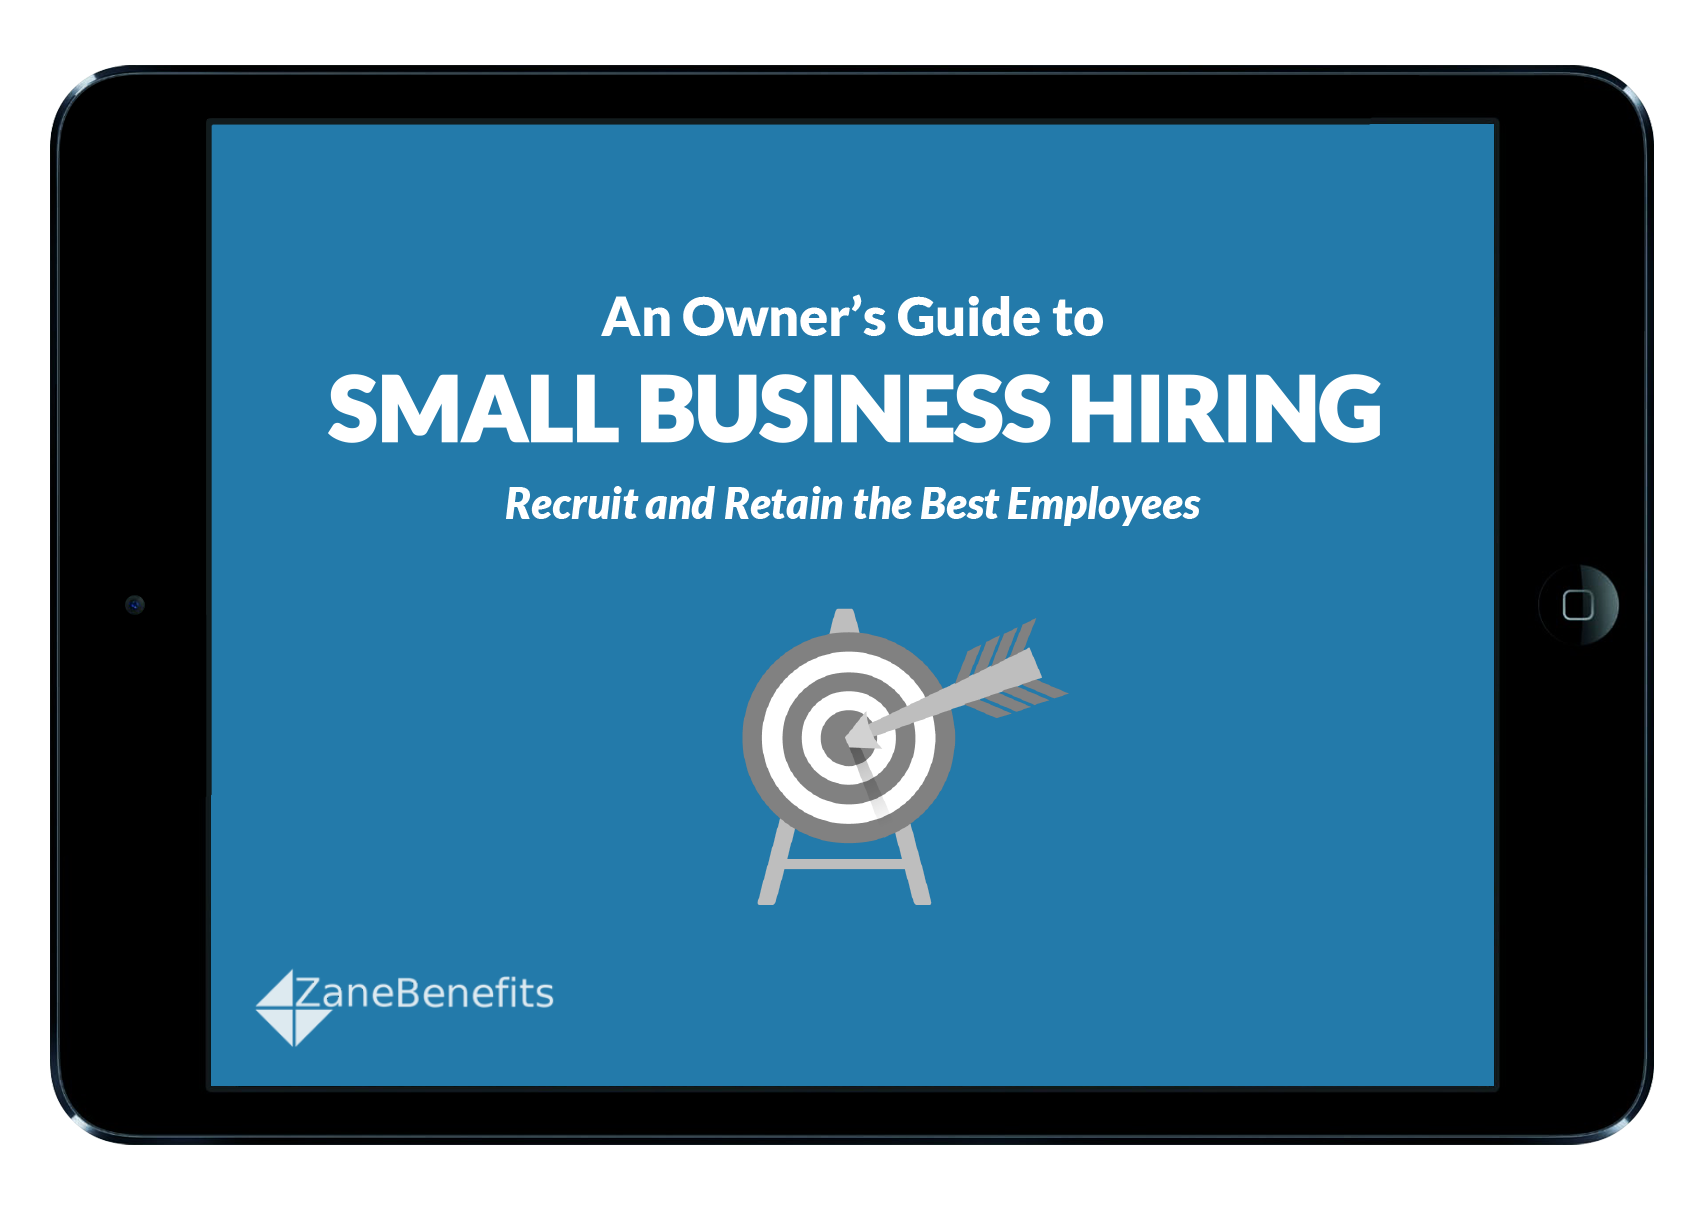 An Owner's Guide to Small Business Hiring